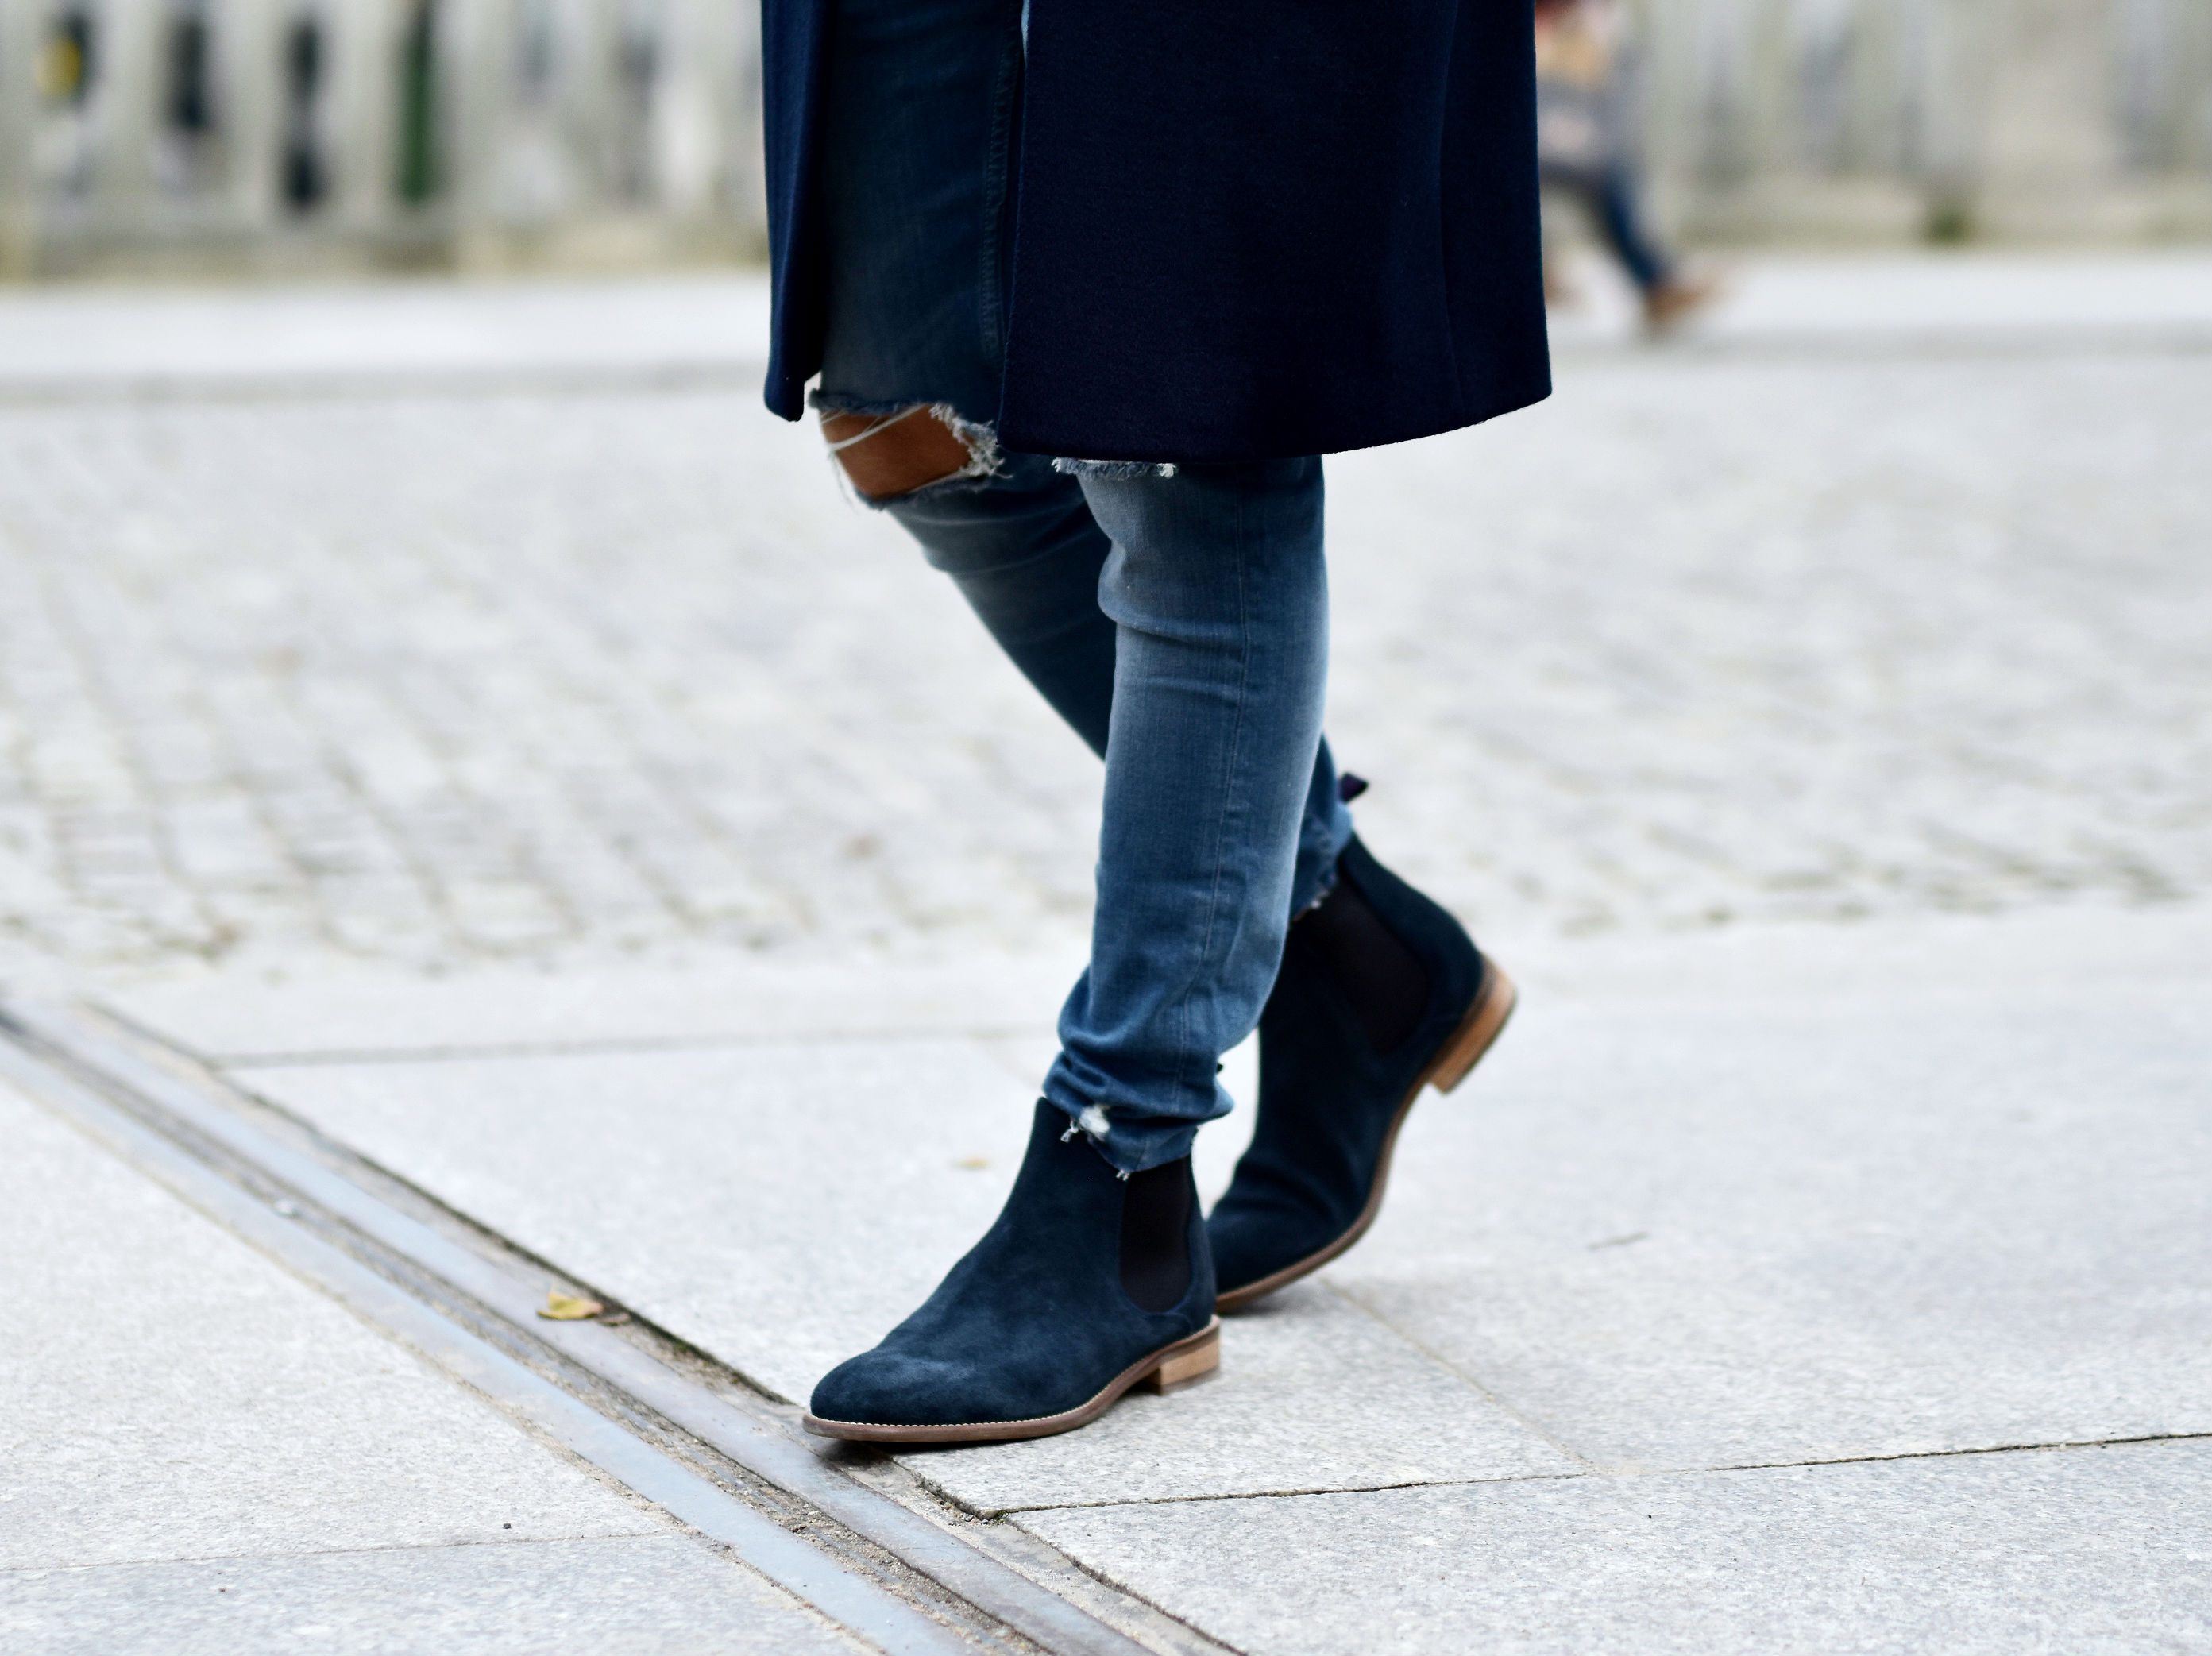 tommeezjerry-styleblog-maennerblog-maenner-modeblog-berlin-berlinblog-maennermodeblog-outfit-mantel-marks-and-spencer-coat-chelsea-boots-autumn-look-7